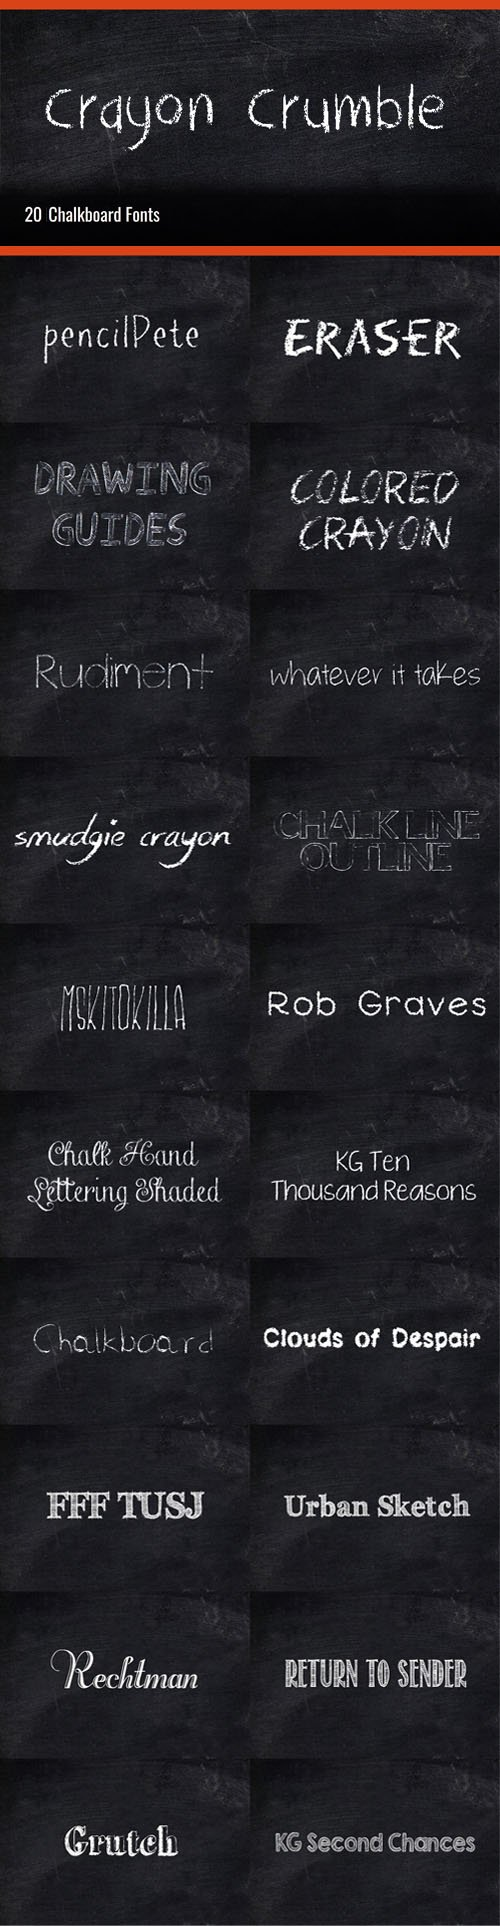 21 Chalkboard Fonts Collection